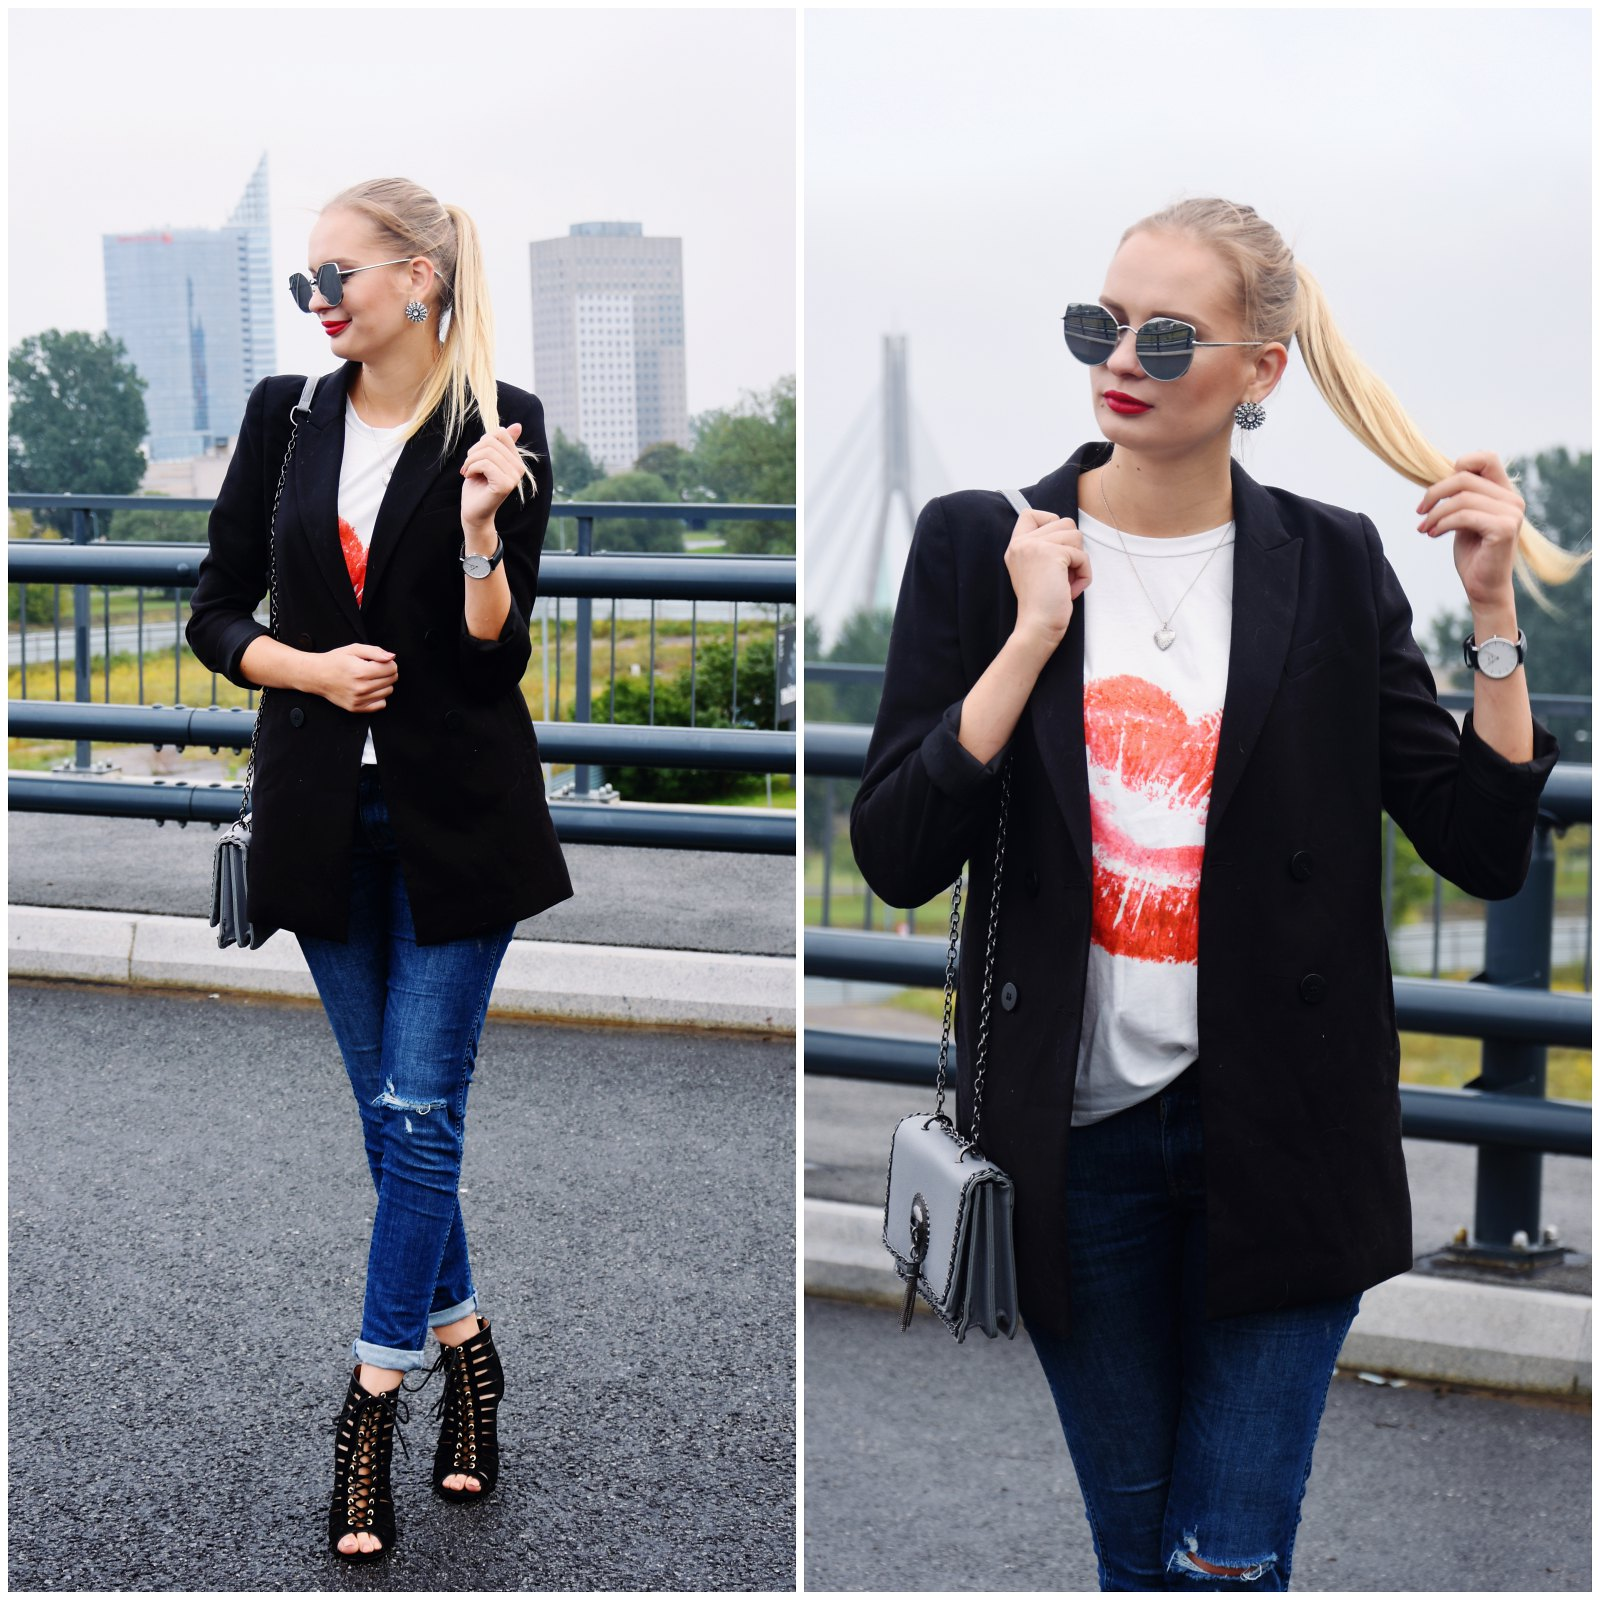 Lip print outfit inspiration